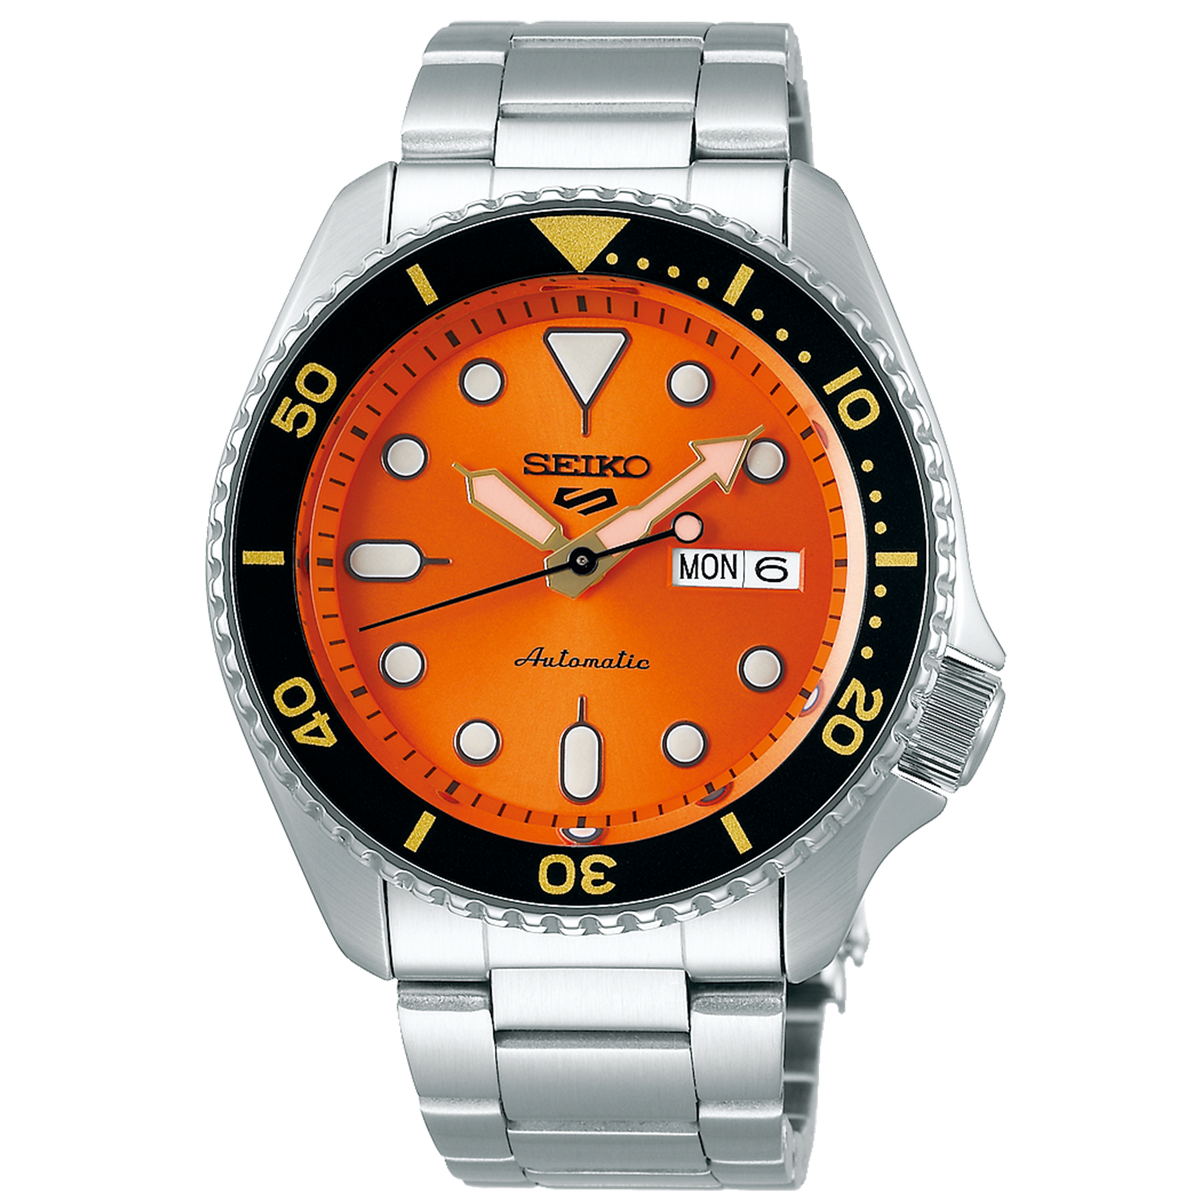 Seiko 5 Sport - Sport Series with Orange Dial